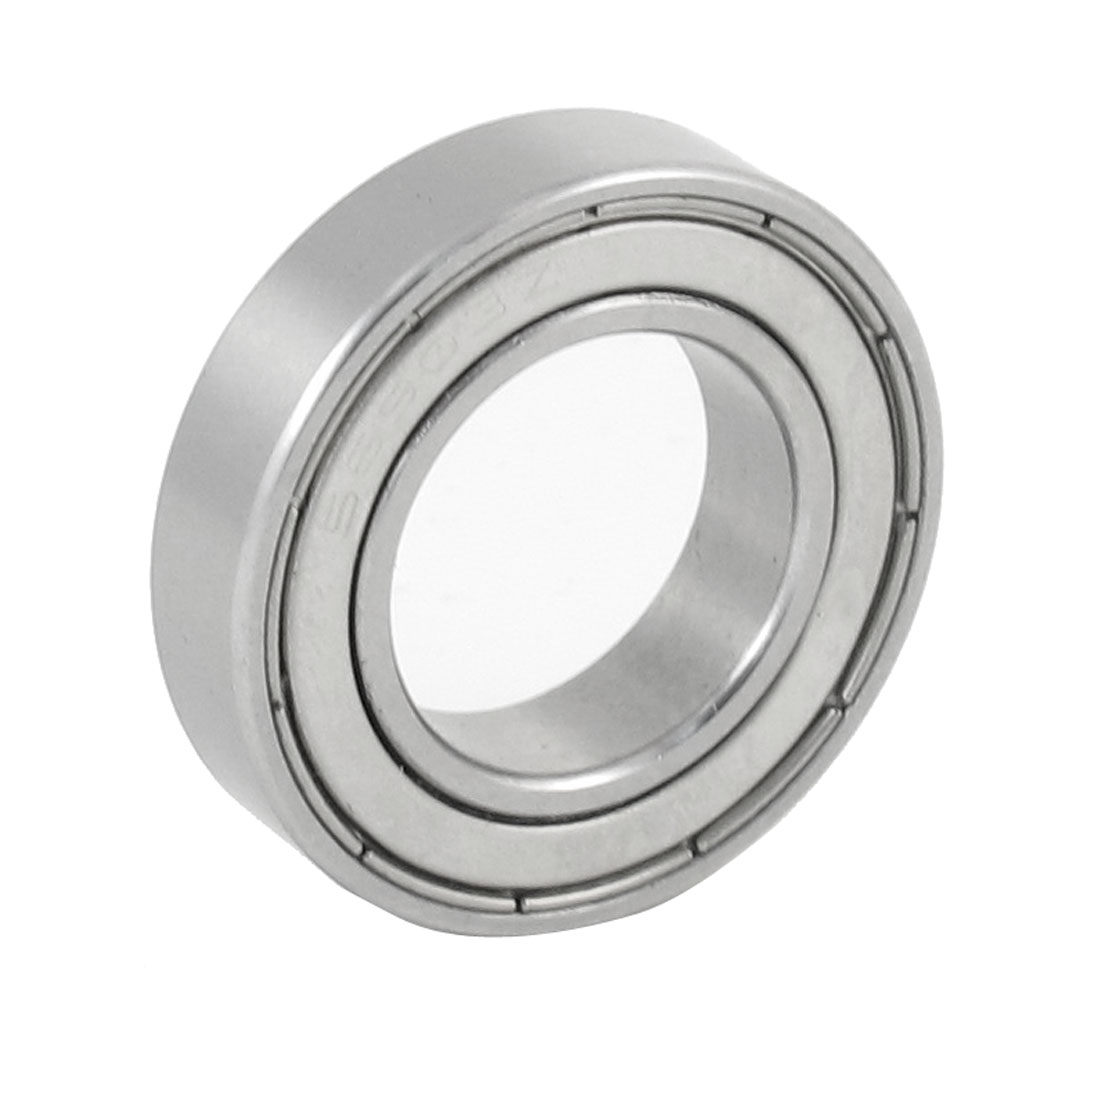 Stainless Steel 30mm x 17mm x 7mm Sealed Deep Groove Ball Bearing